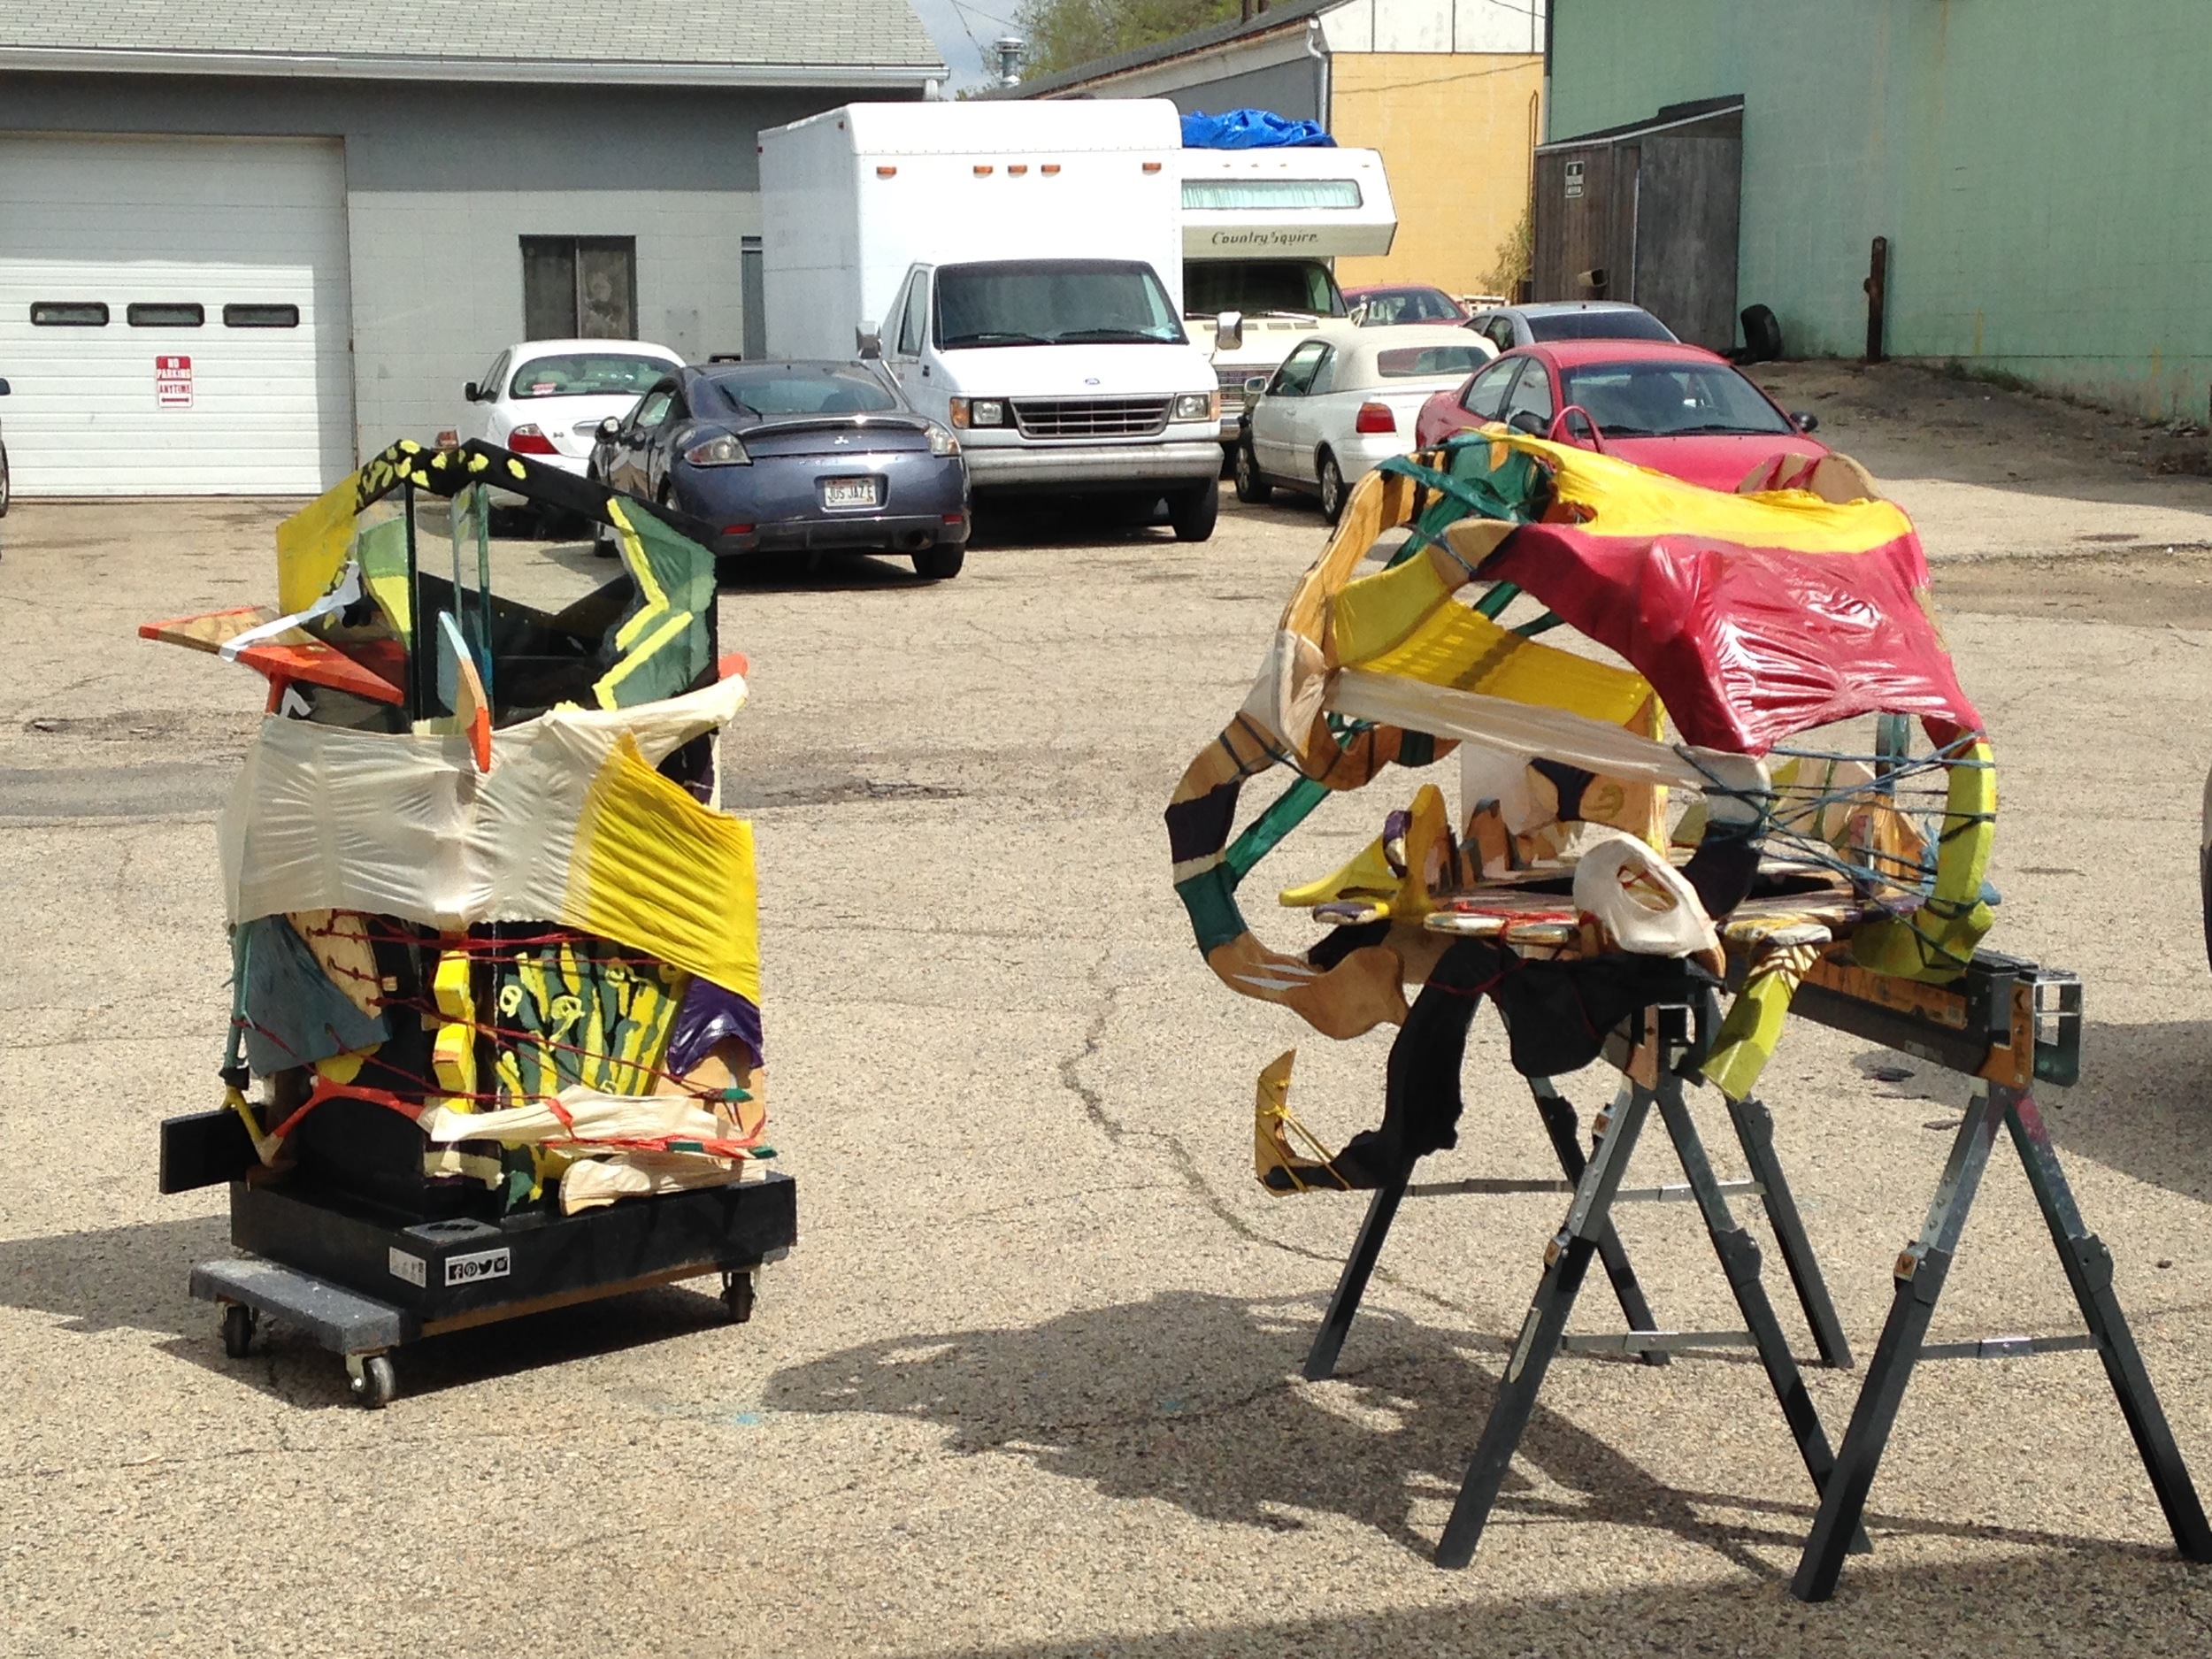 Everything drying in the parking lot outside our studio. We varnished everything a lot to be prepared for rain.